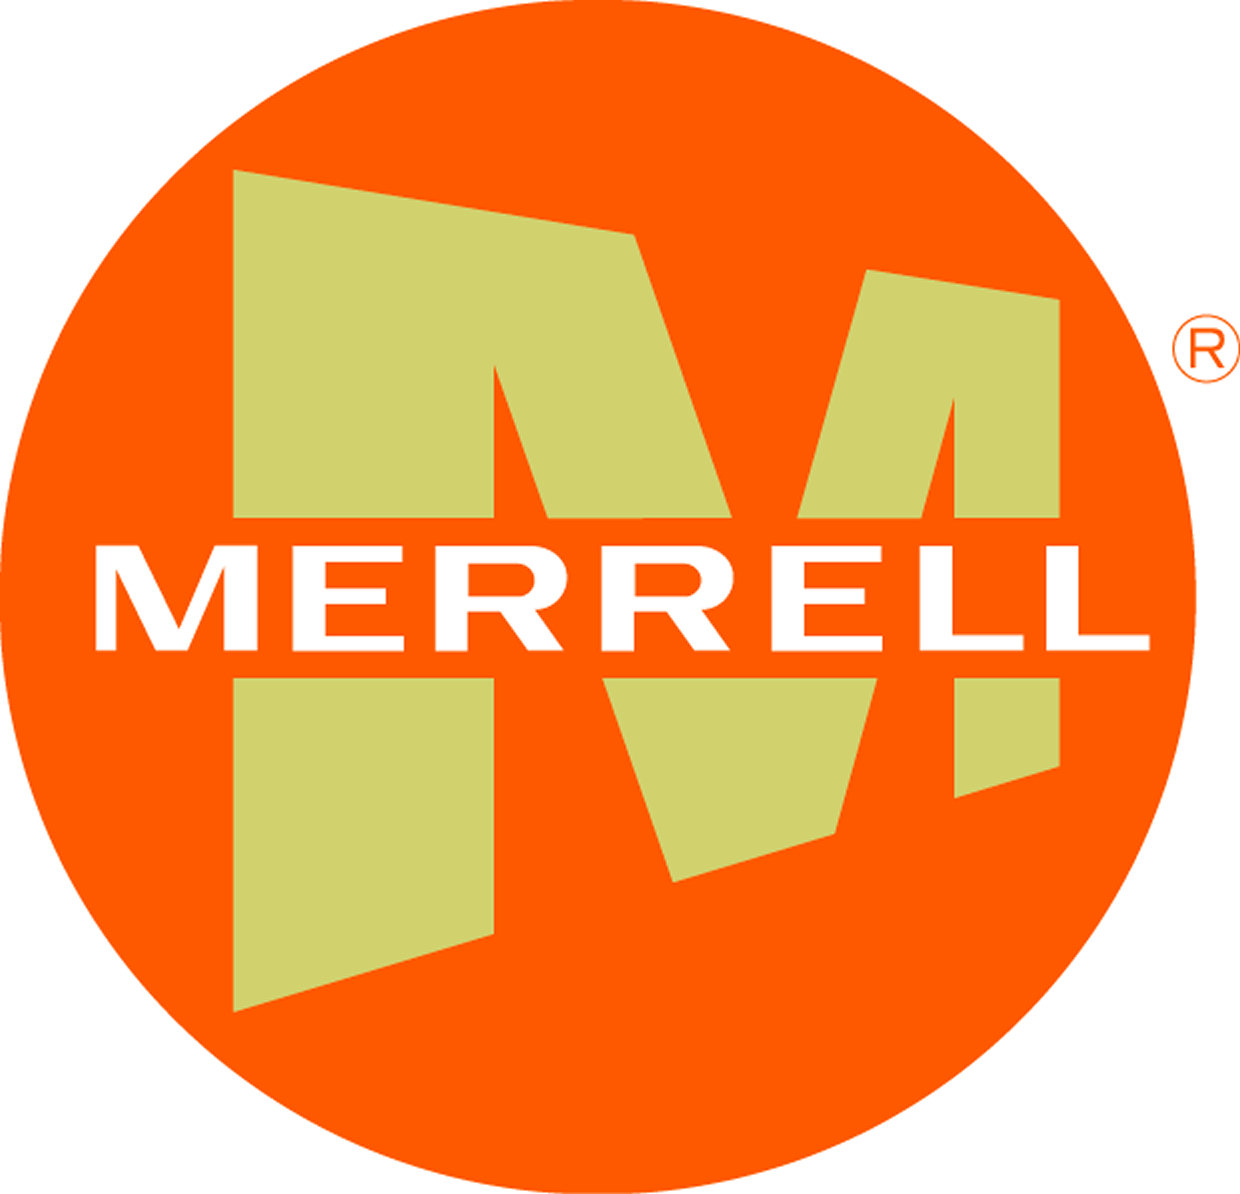 merrell-logo - Tri-State Outfitters 2c7b66eea58